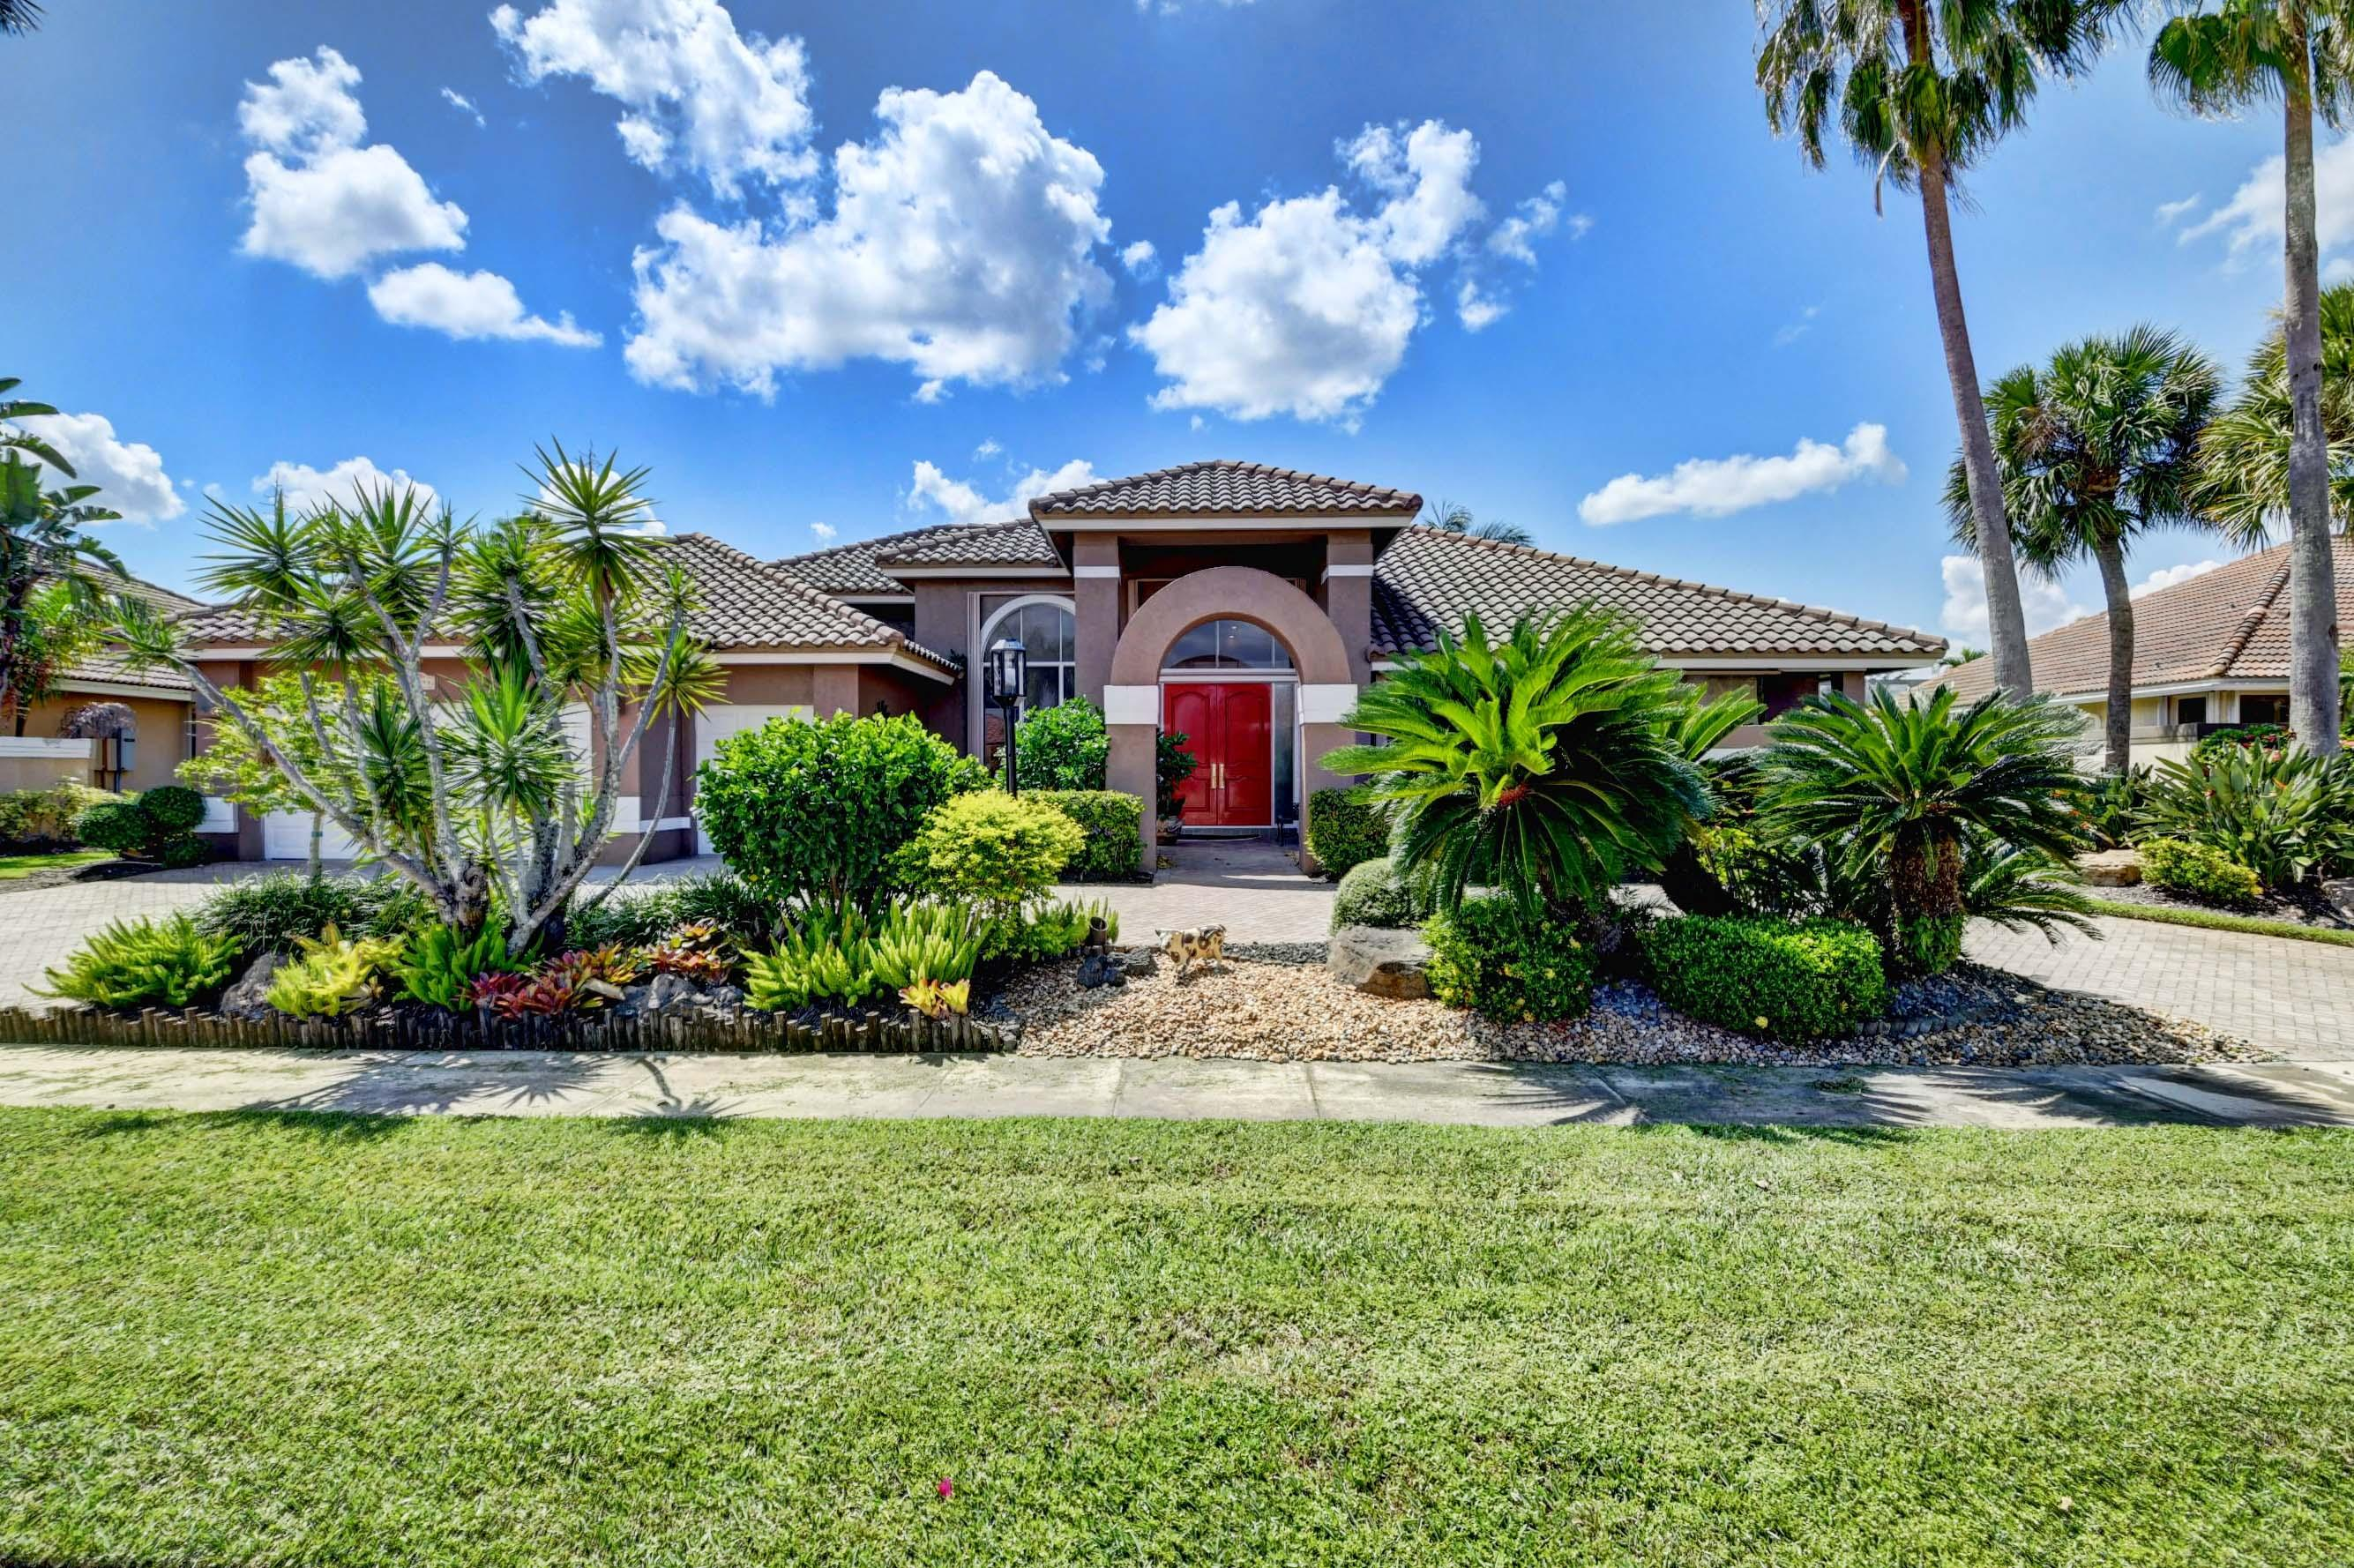 Photo of 17593 Sealakes Drive, Boca Raton, FL 33498